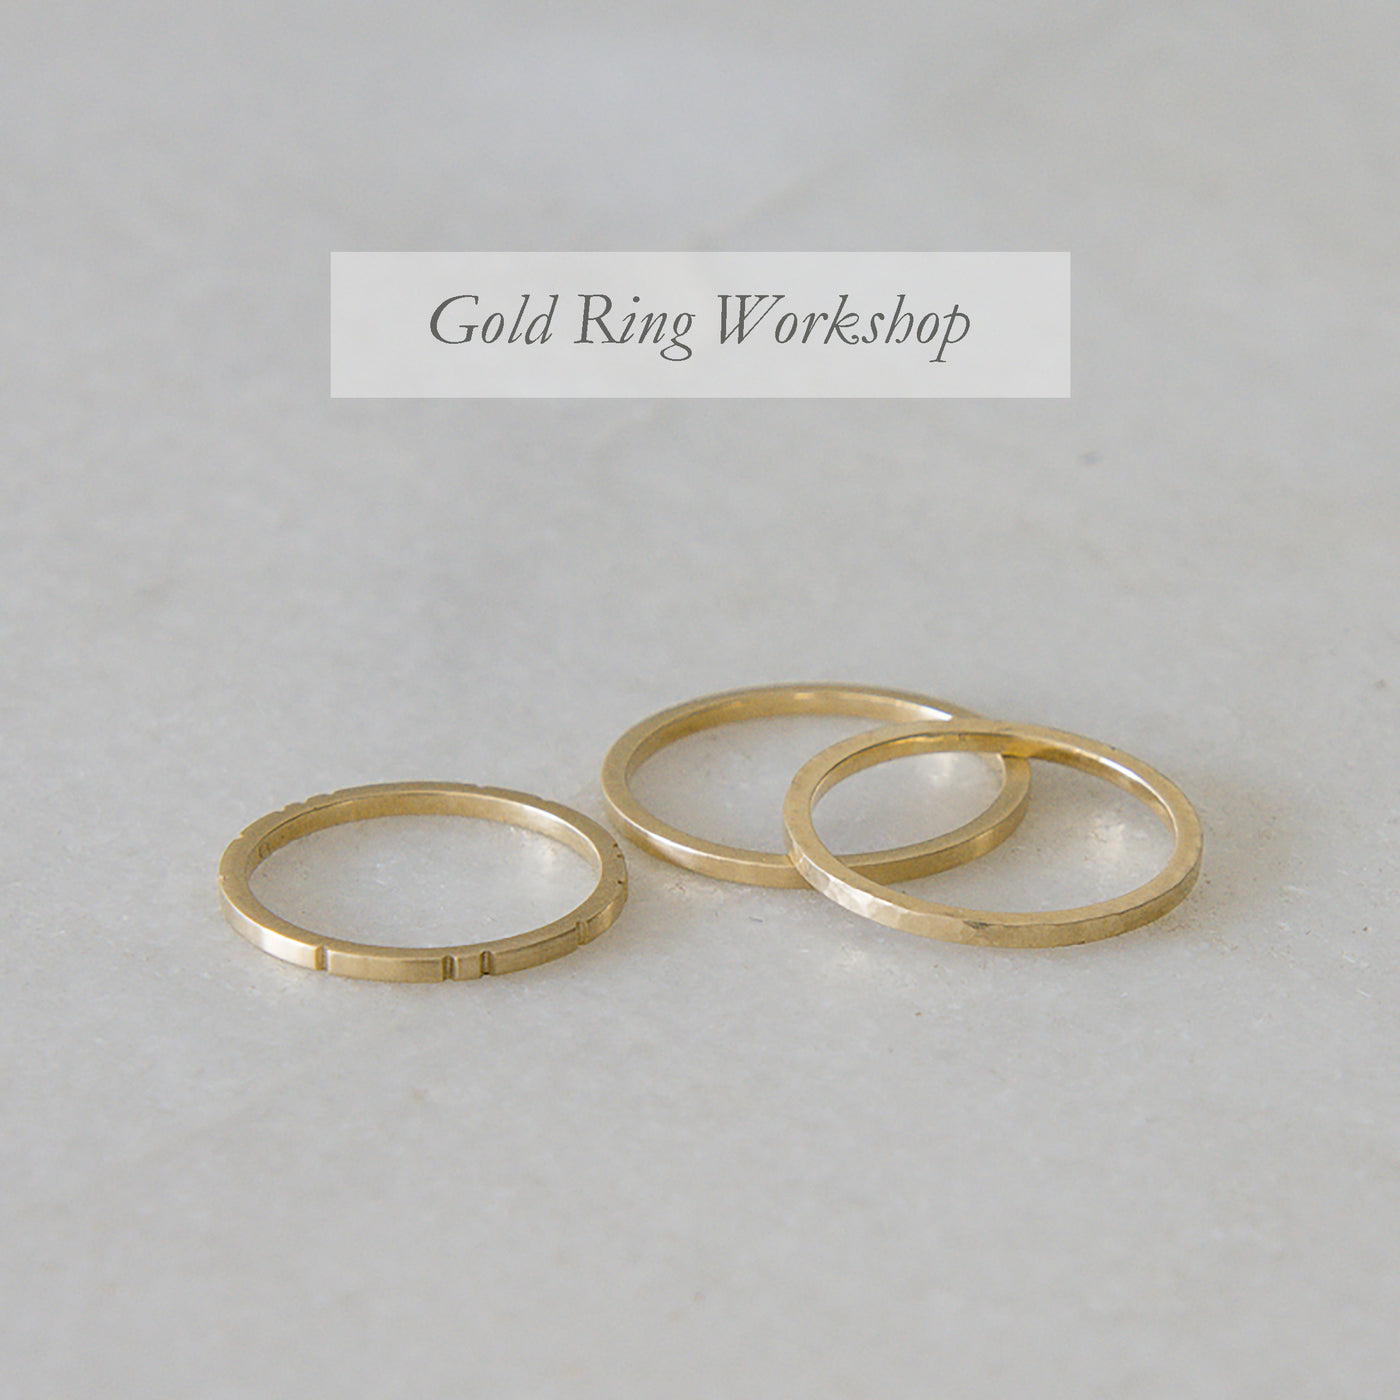 Gold Ring Workshop - Cape Town